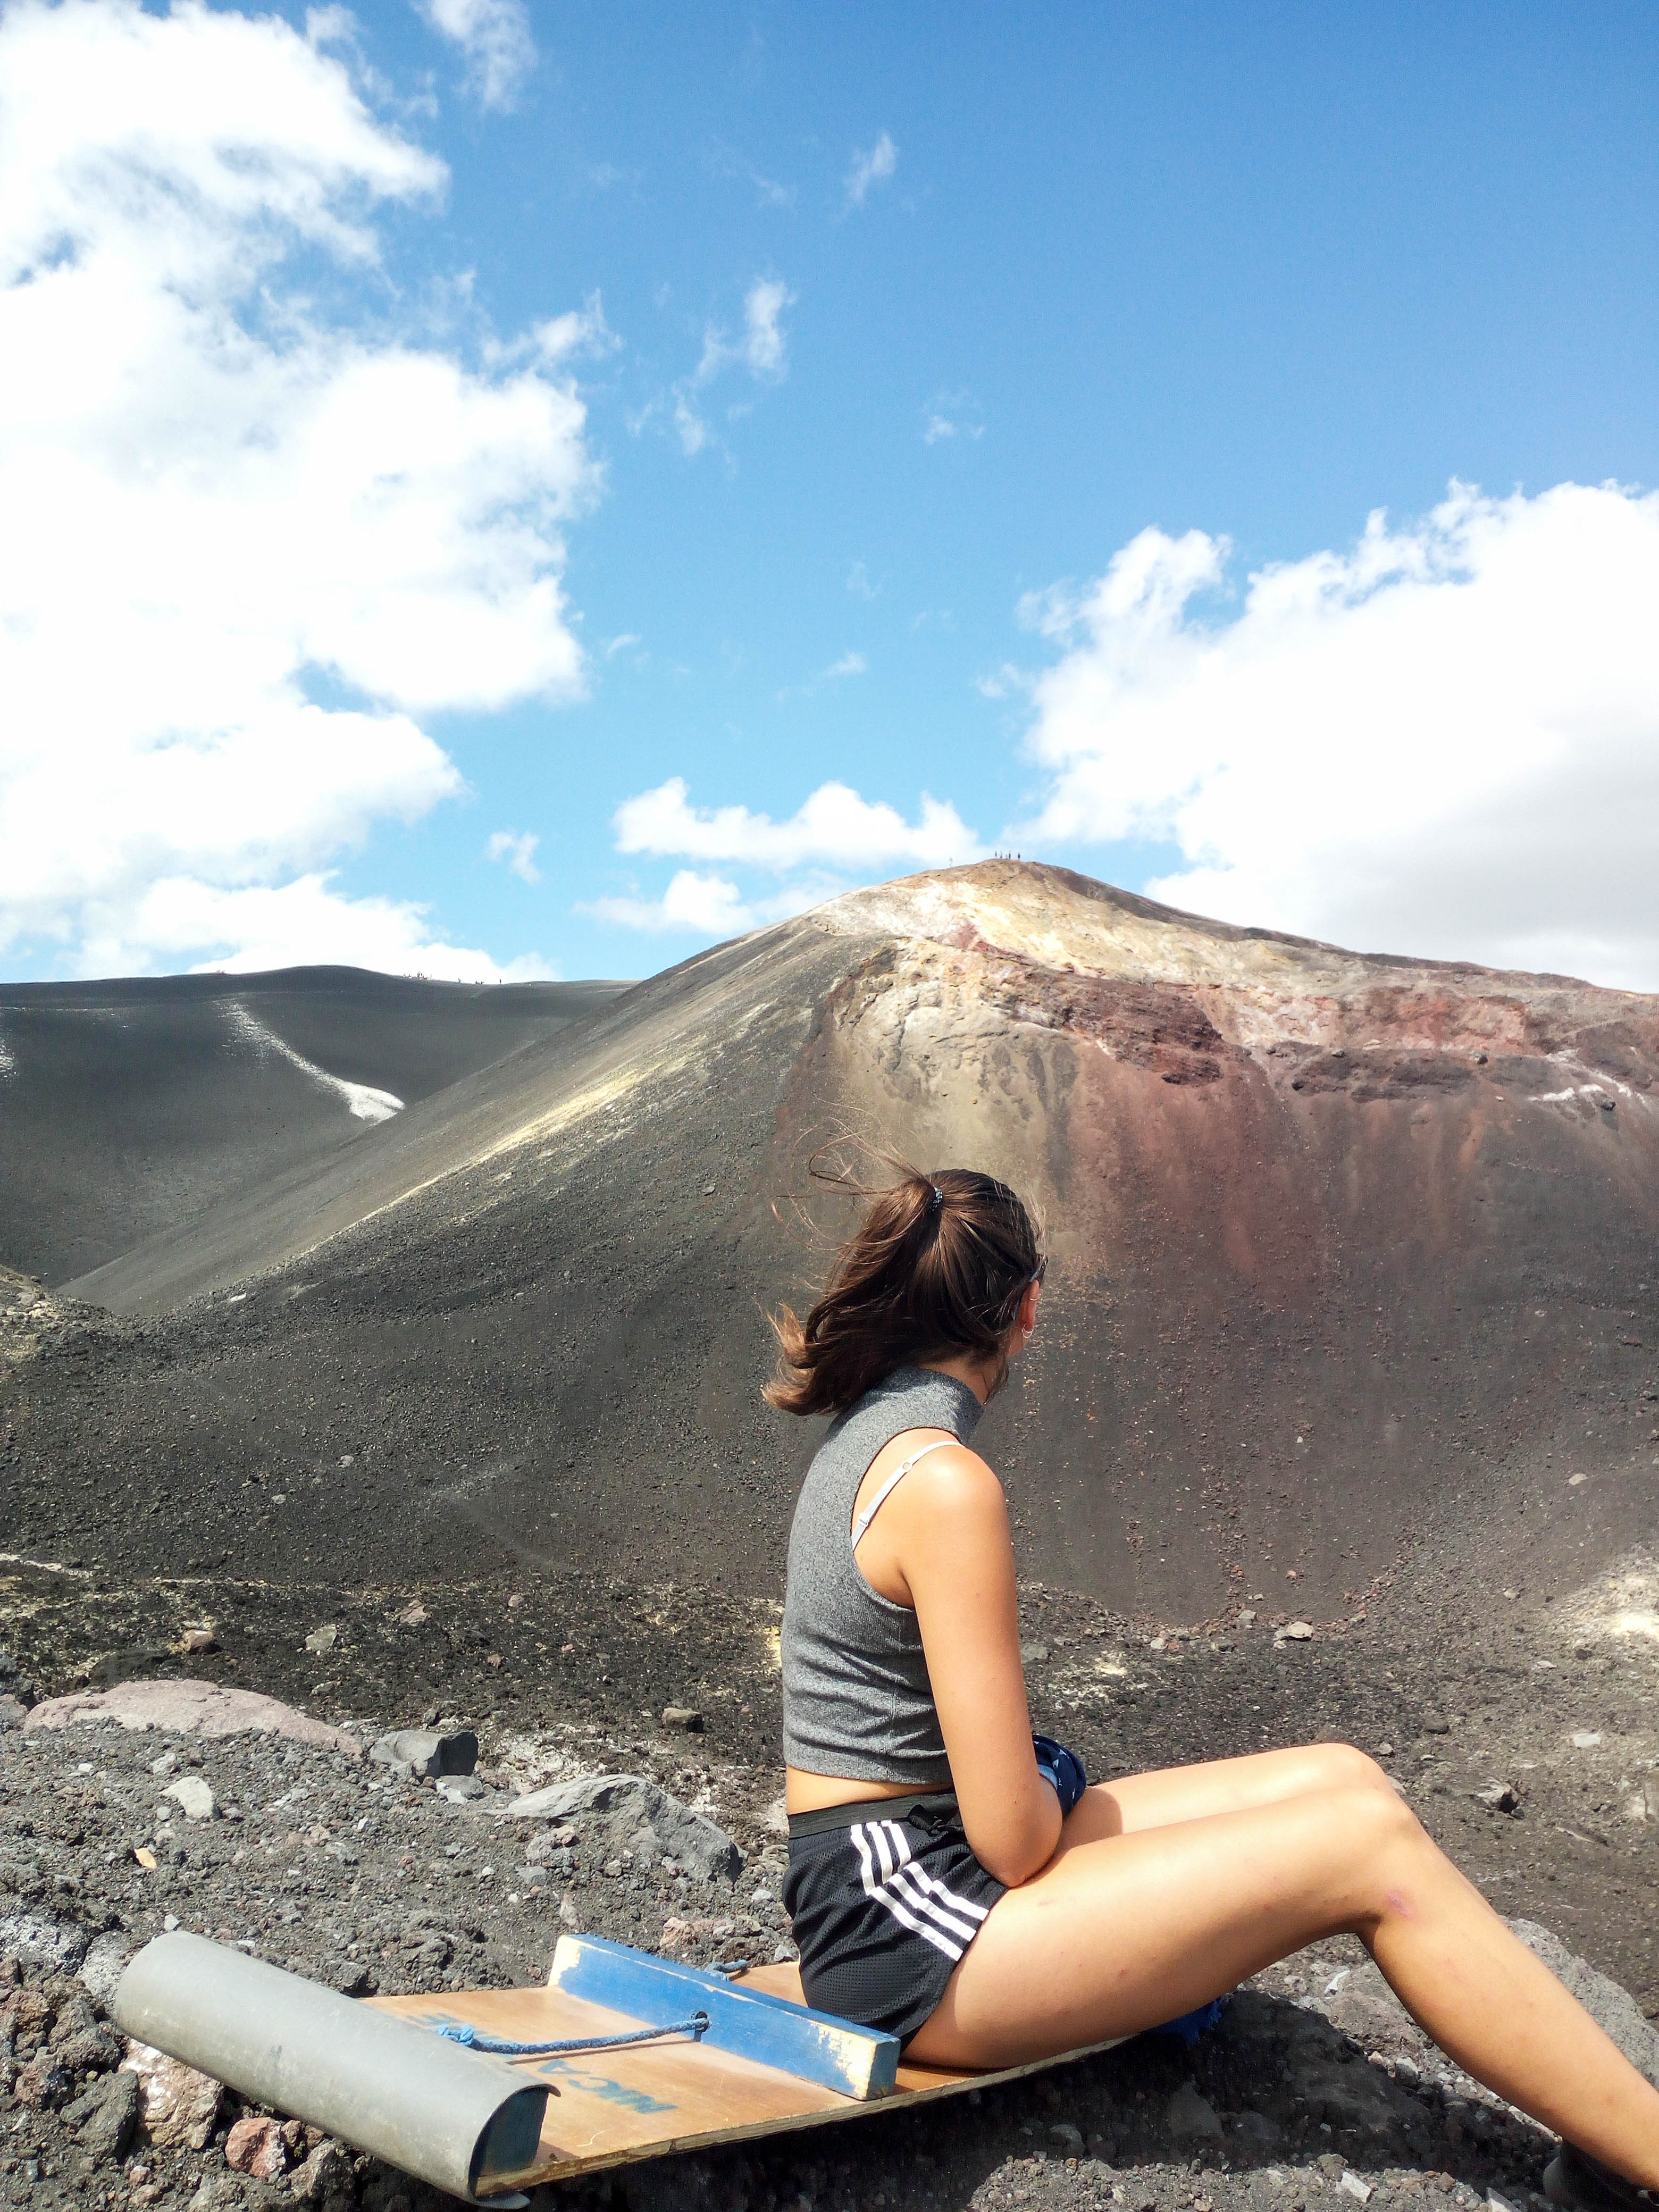 hiking to the tops of Cerro Negro. Two things not to miss out on in Leon, walk on top of a white cathedral and slide down the nearby volcano. Both, in one day if you want to.